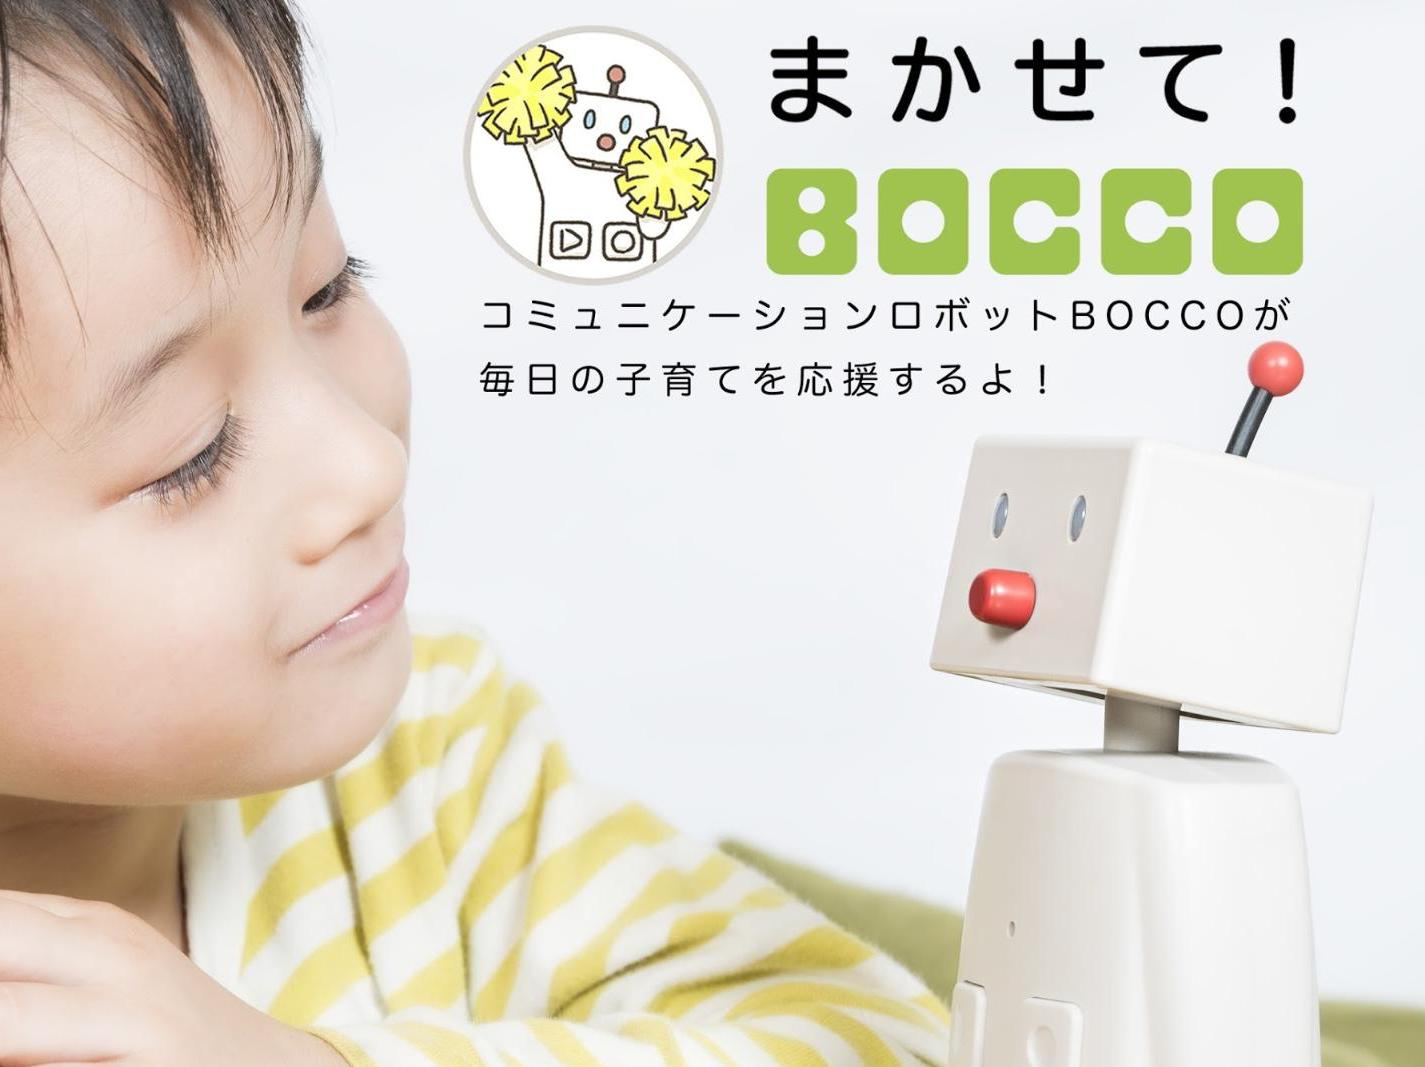 Collaborate for New Parenting Support Service via BOCCO